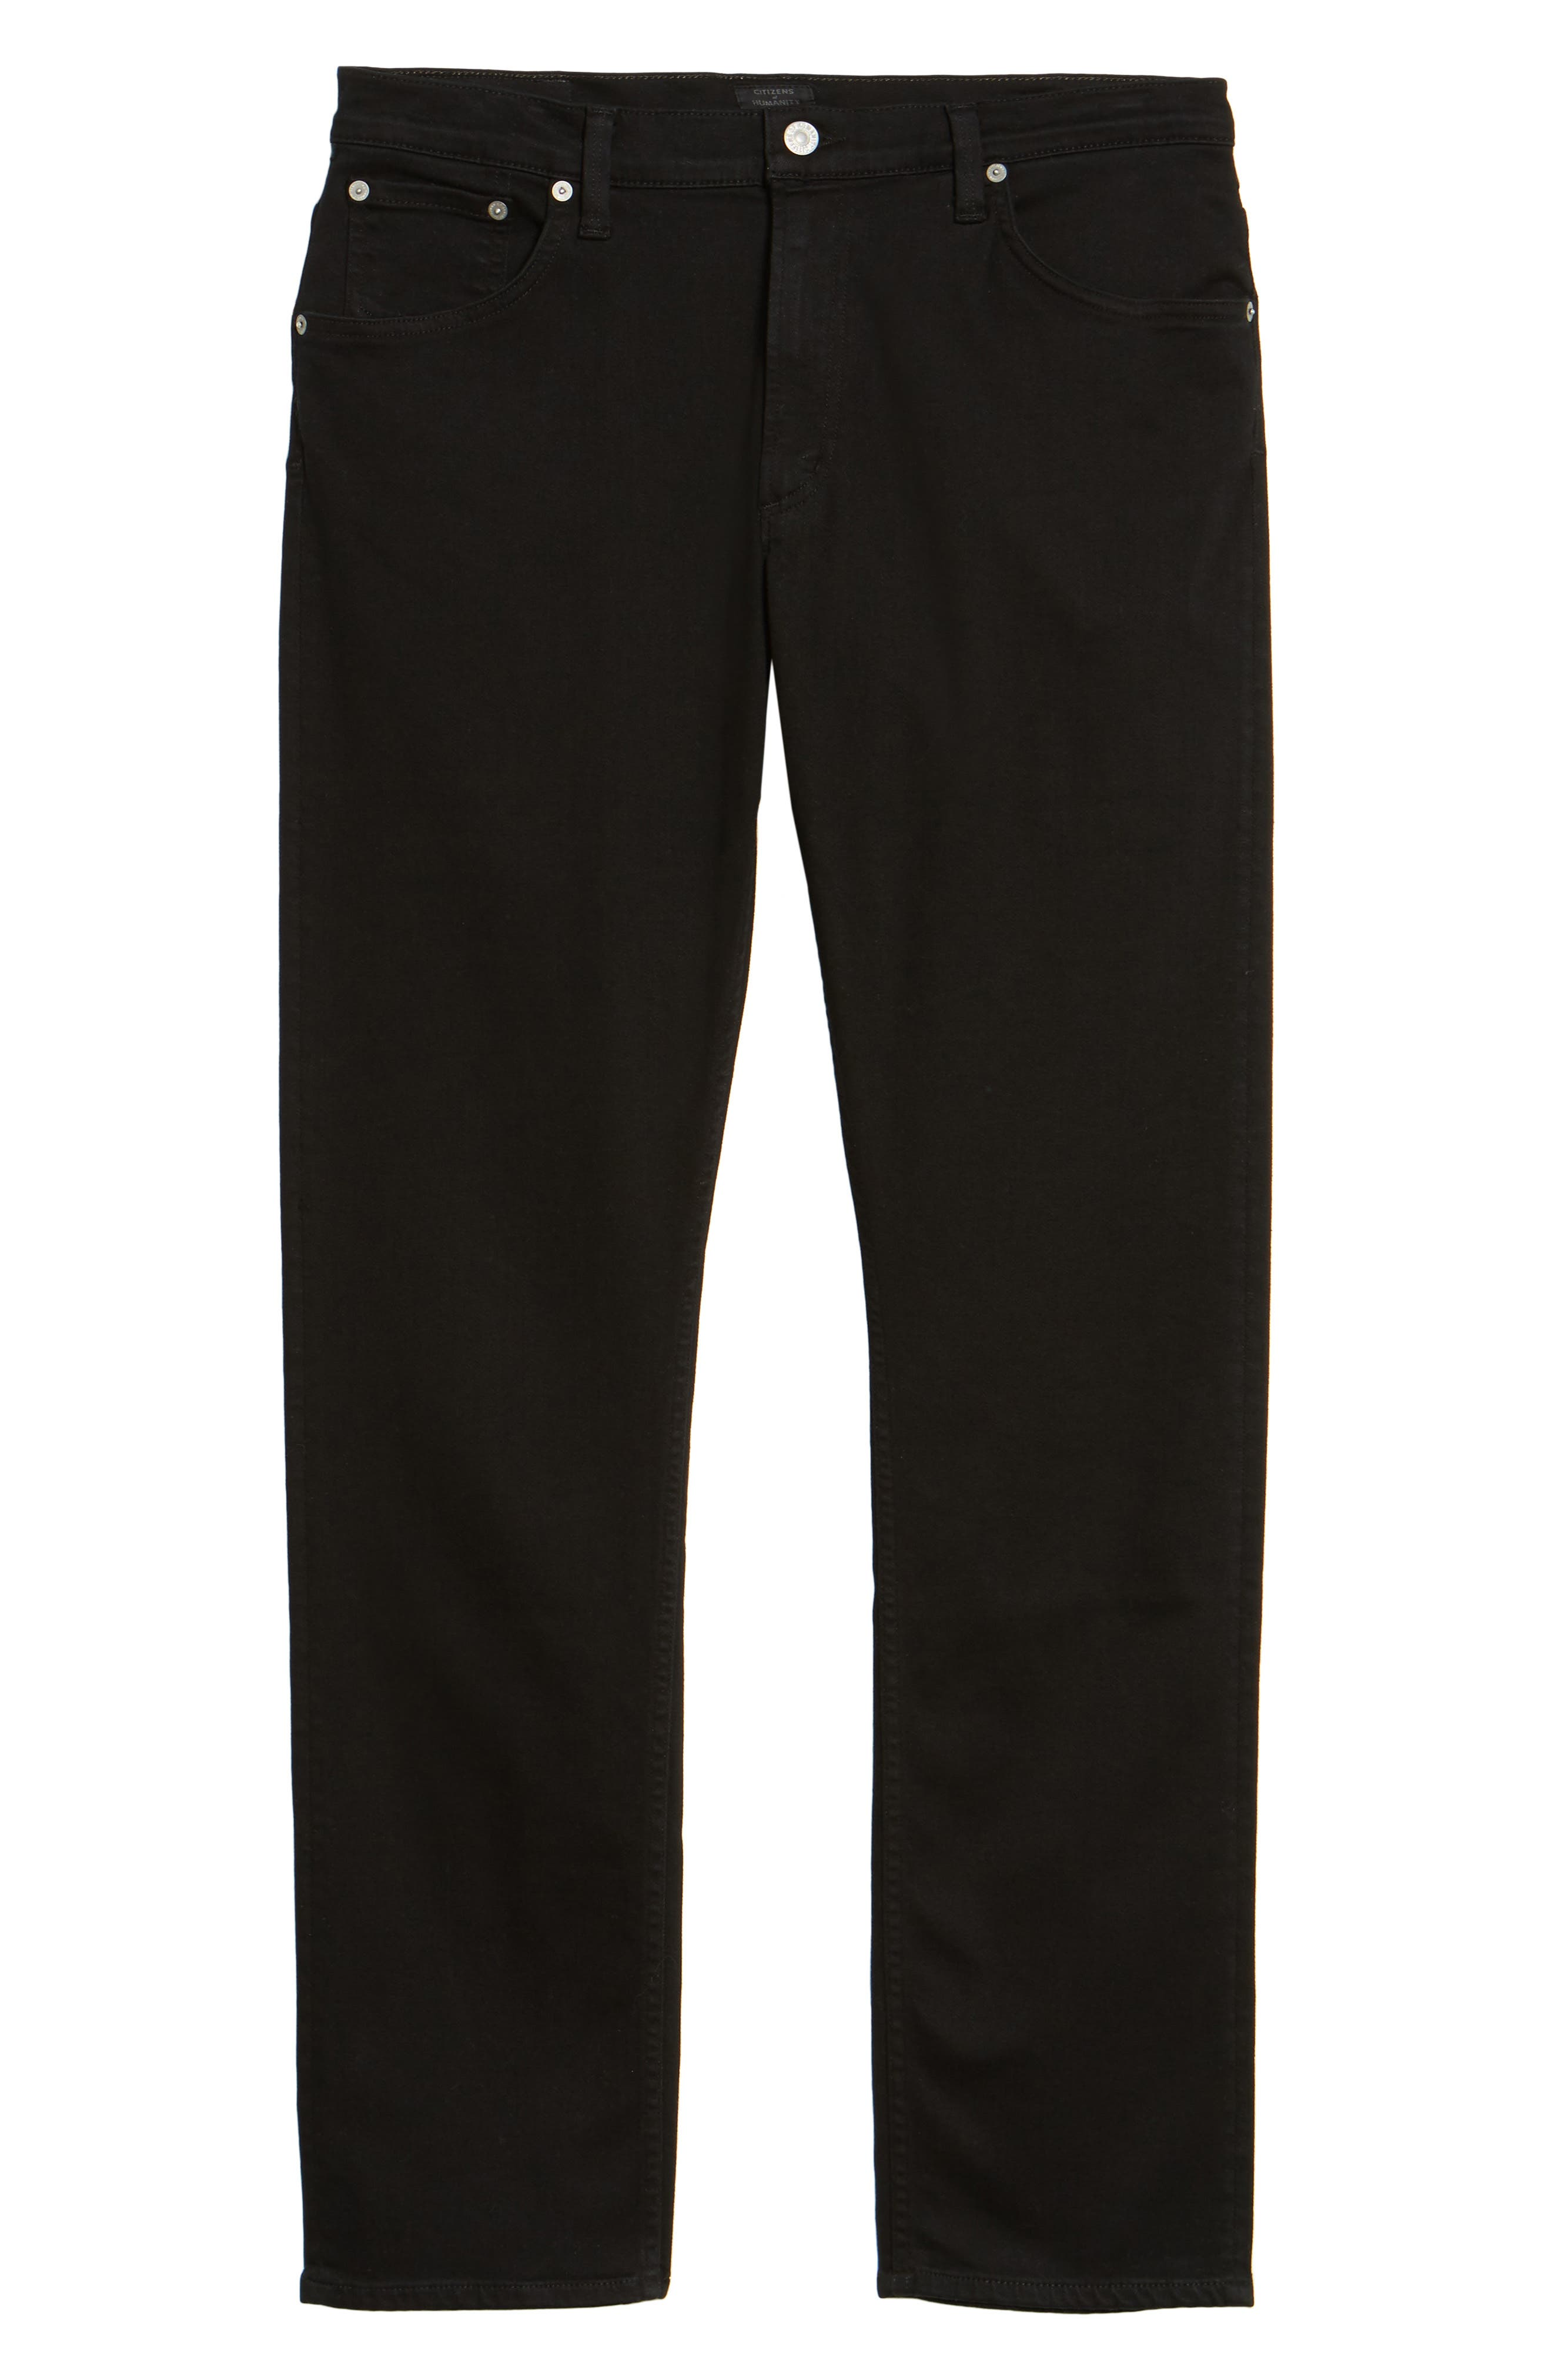 Bowery Slim Fit Jeans,                             Alternate thumbnail 6, color,                             007